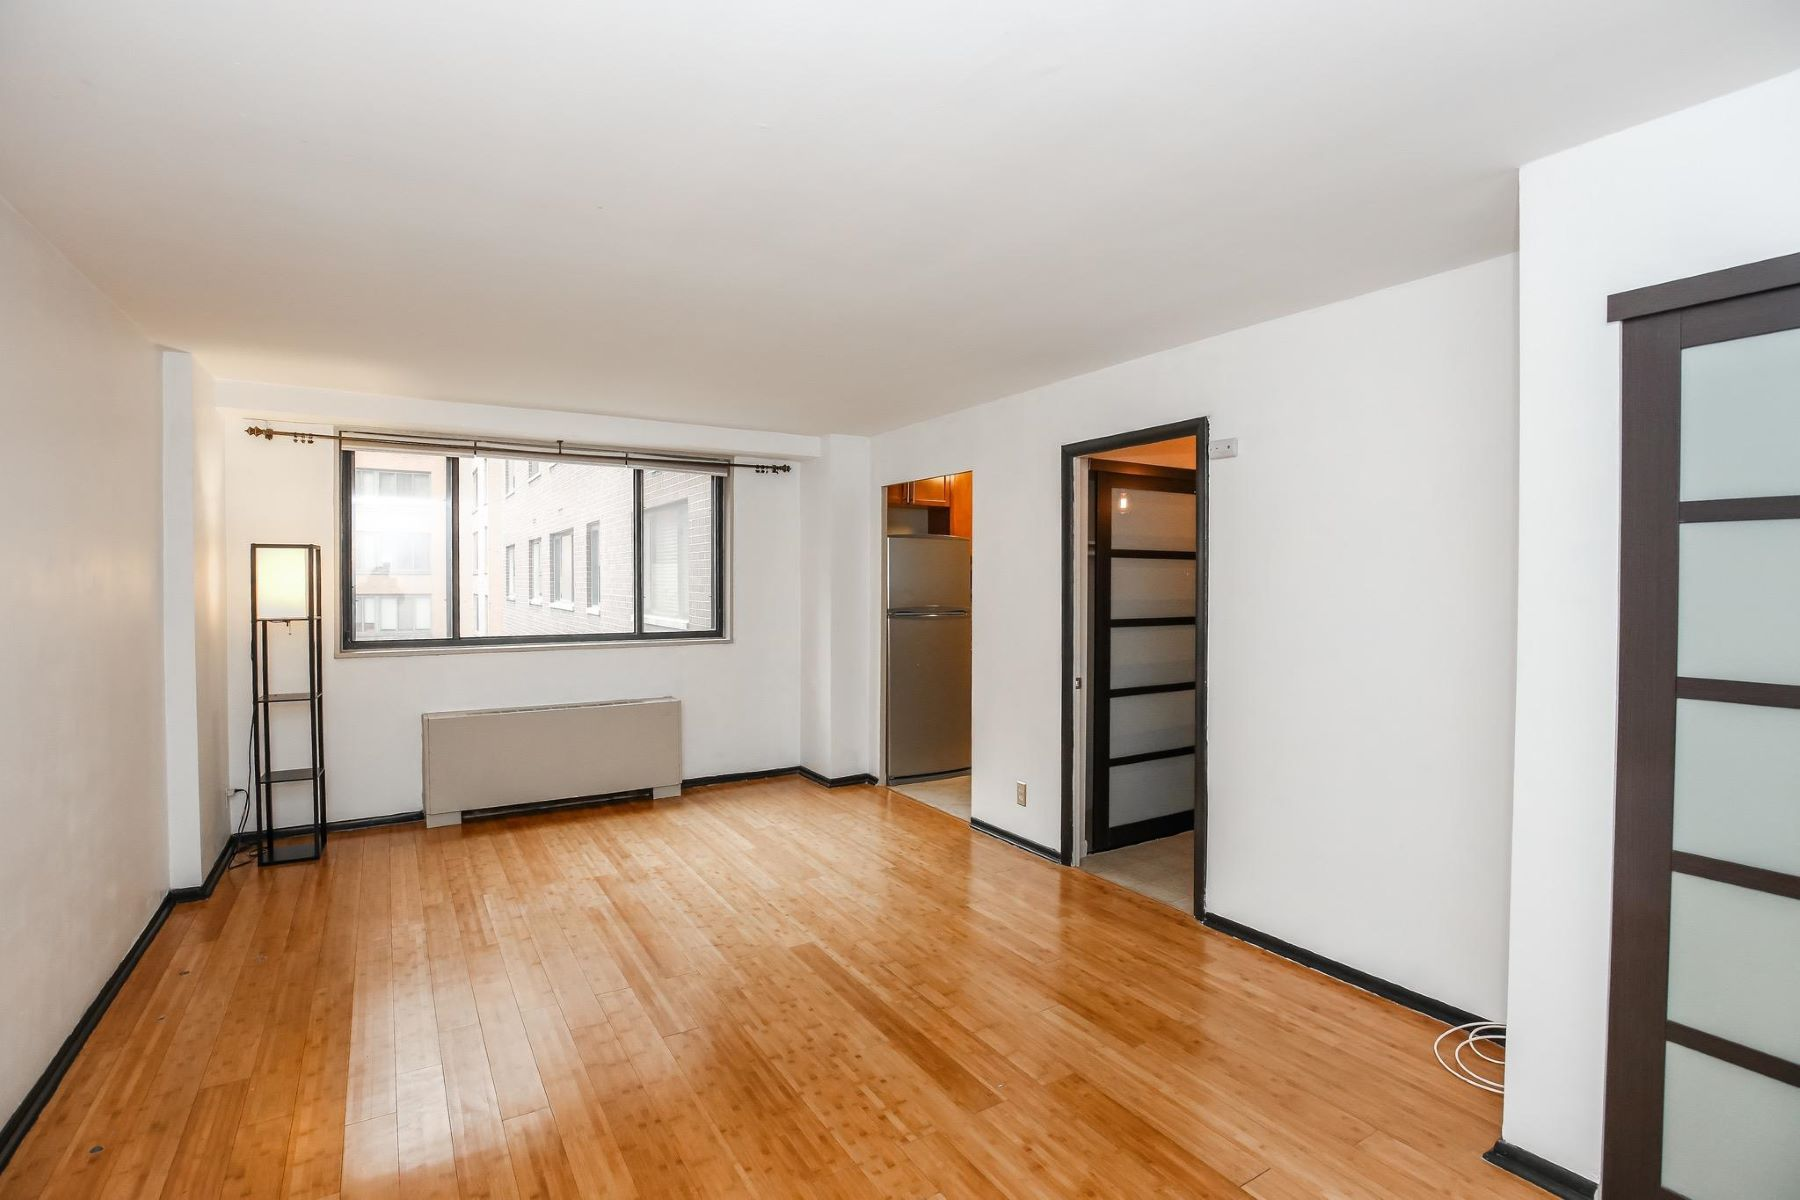 Additional photo for property listing at 1420 N St Nw #214 1420 N St Nw #214 Washington, District Of Columbia 20005 United States